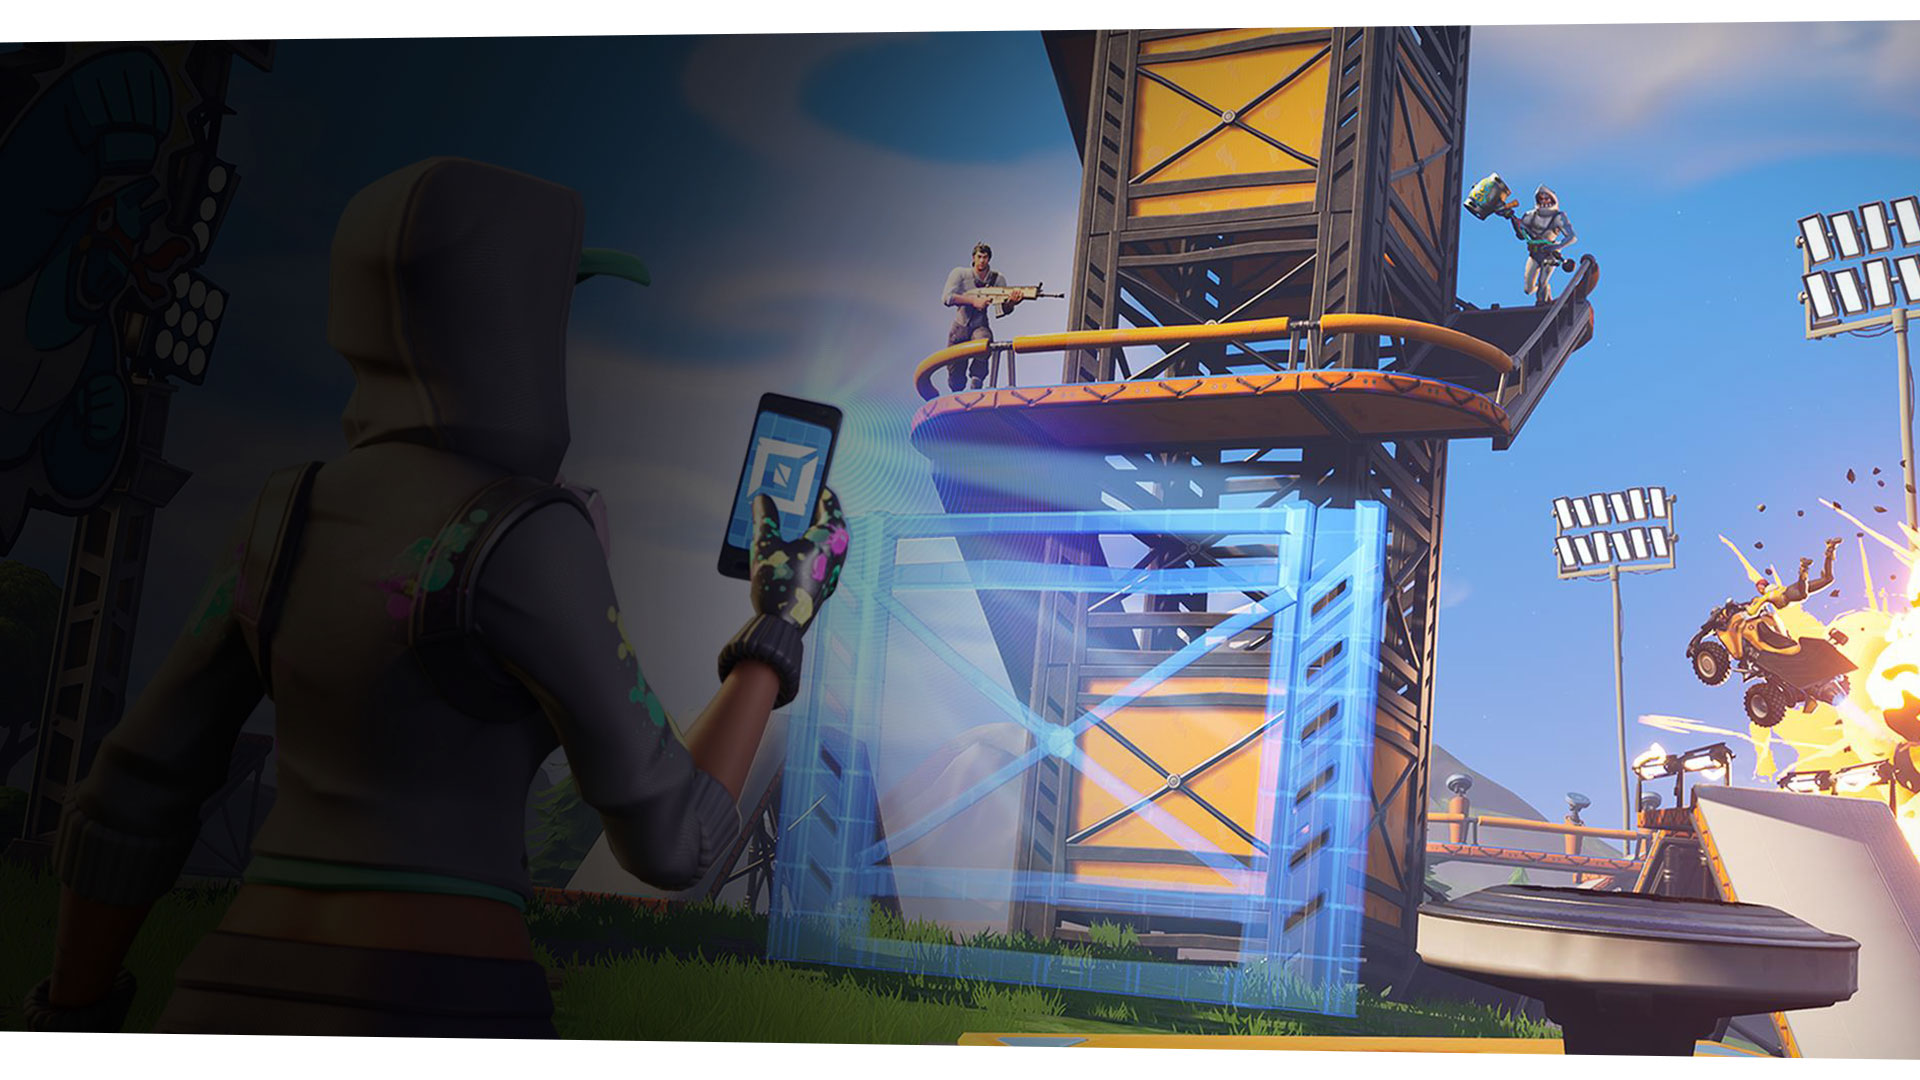 Fortnite character using her mobile device to create scaffolding